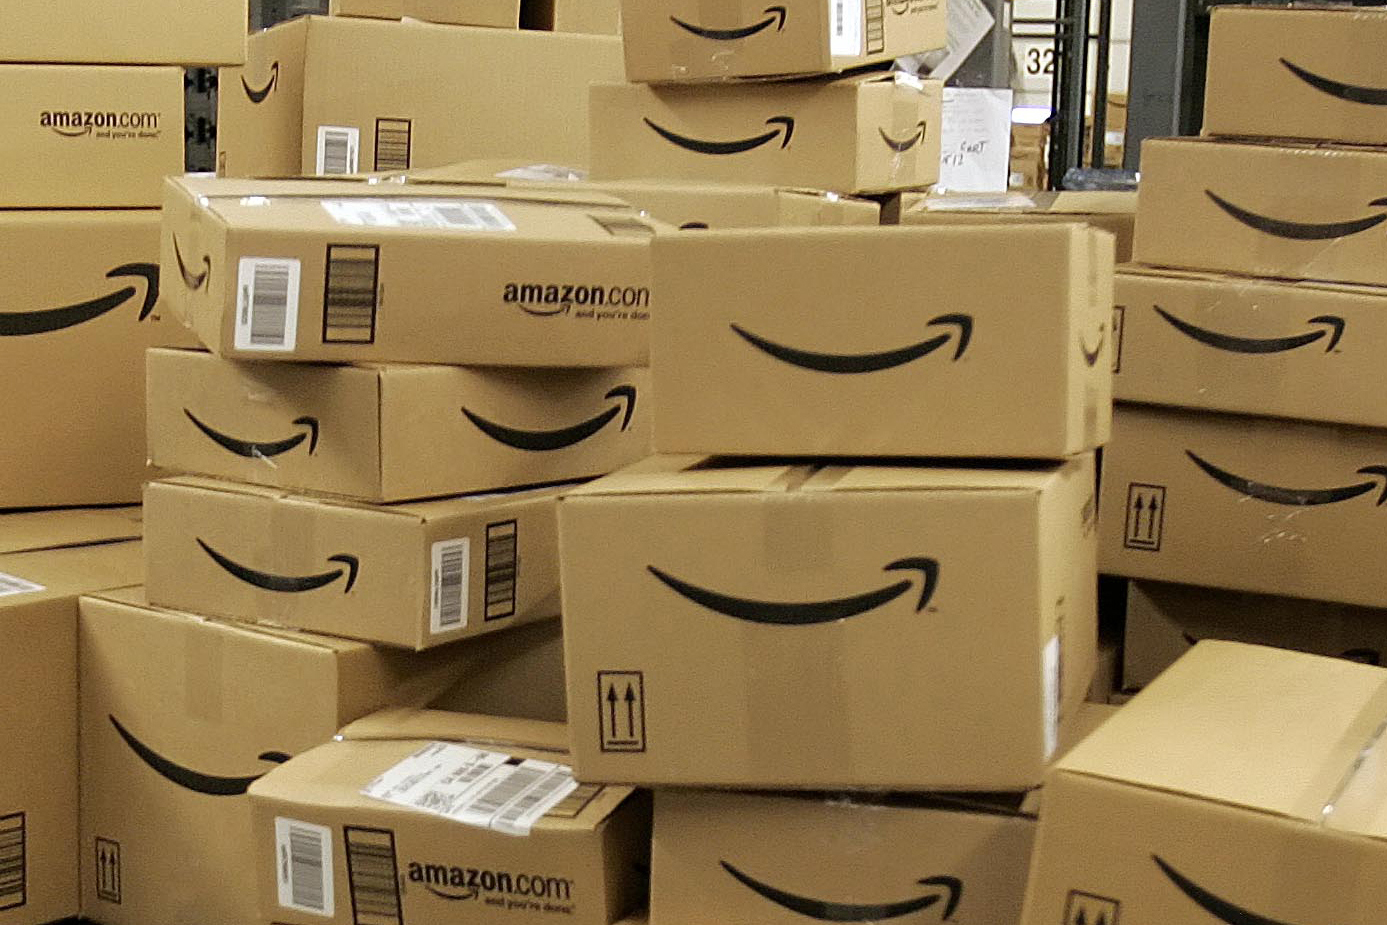 <p>Boxes at the Amazonfulfillment center in Fernley, Nevada.</p>